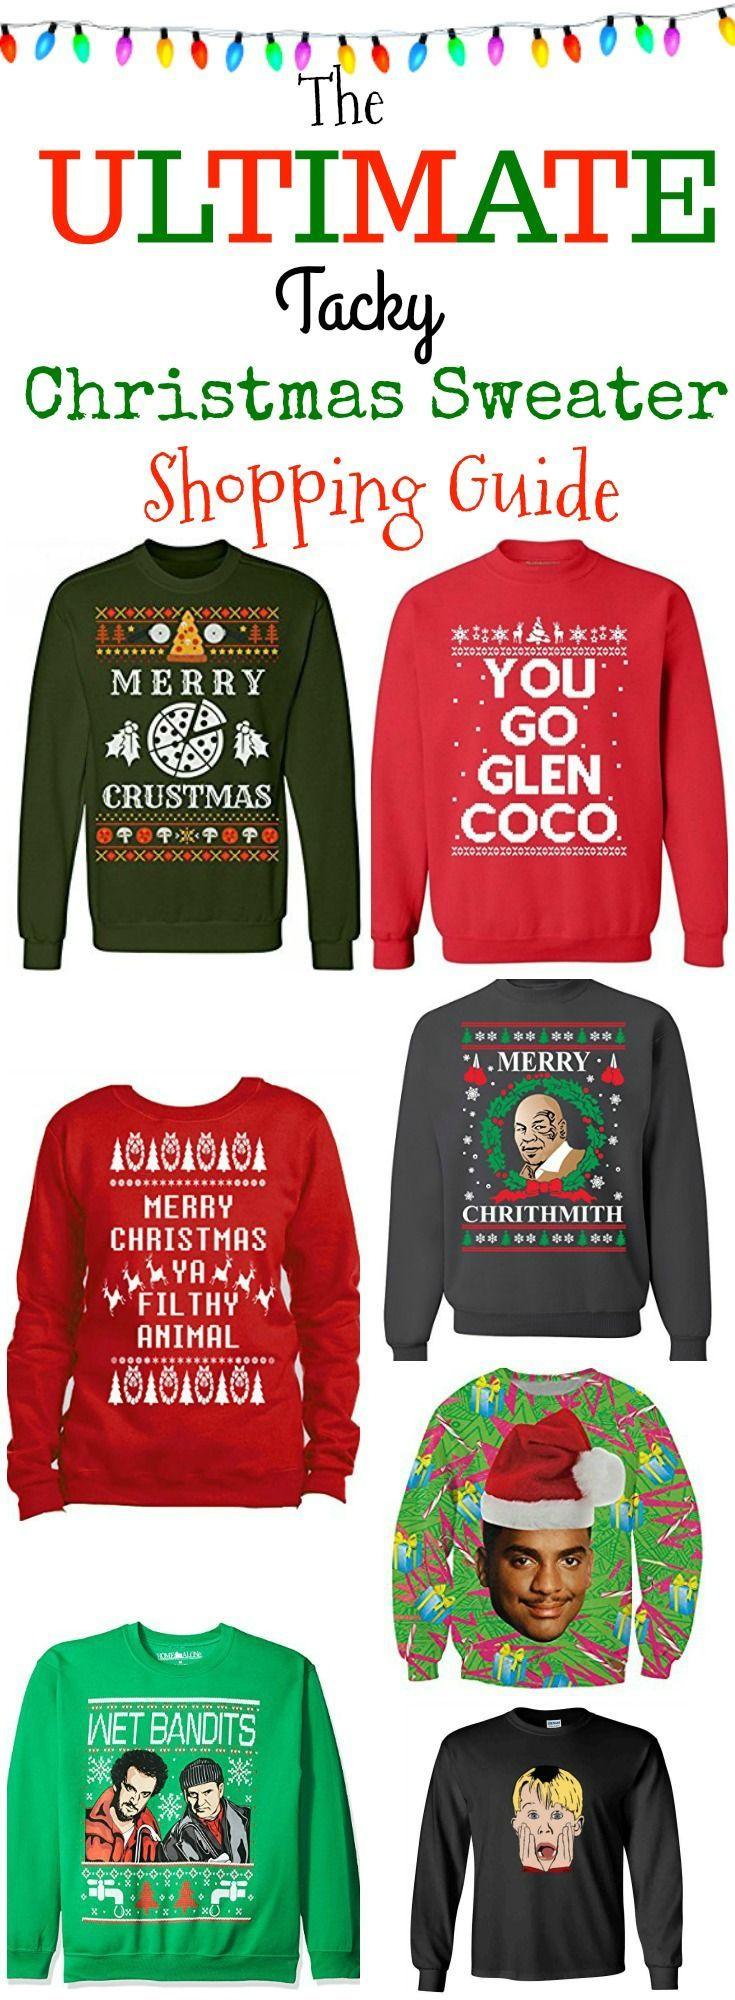 The Ultimate Tacky Christmas Sweater Shopping Guide: Where to buy the best ugly Christmas Sweaters at the best prices! #Christmas